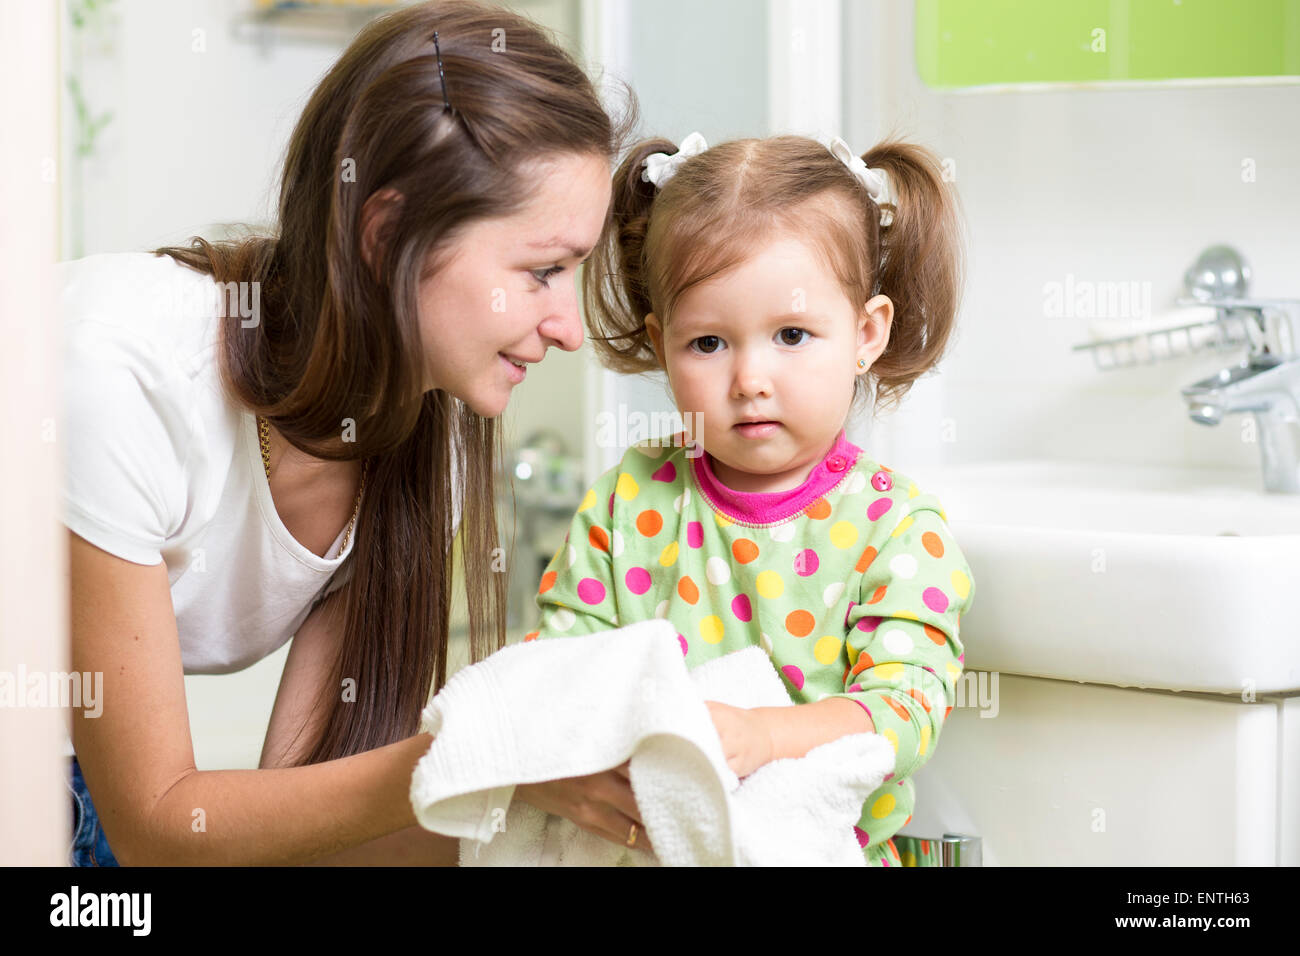 Child girl washing her hands in bathroom. Mom helps her little daughter. - Stock Image